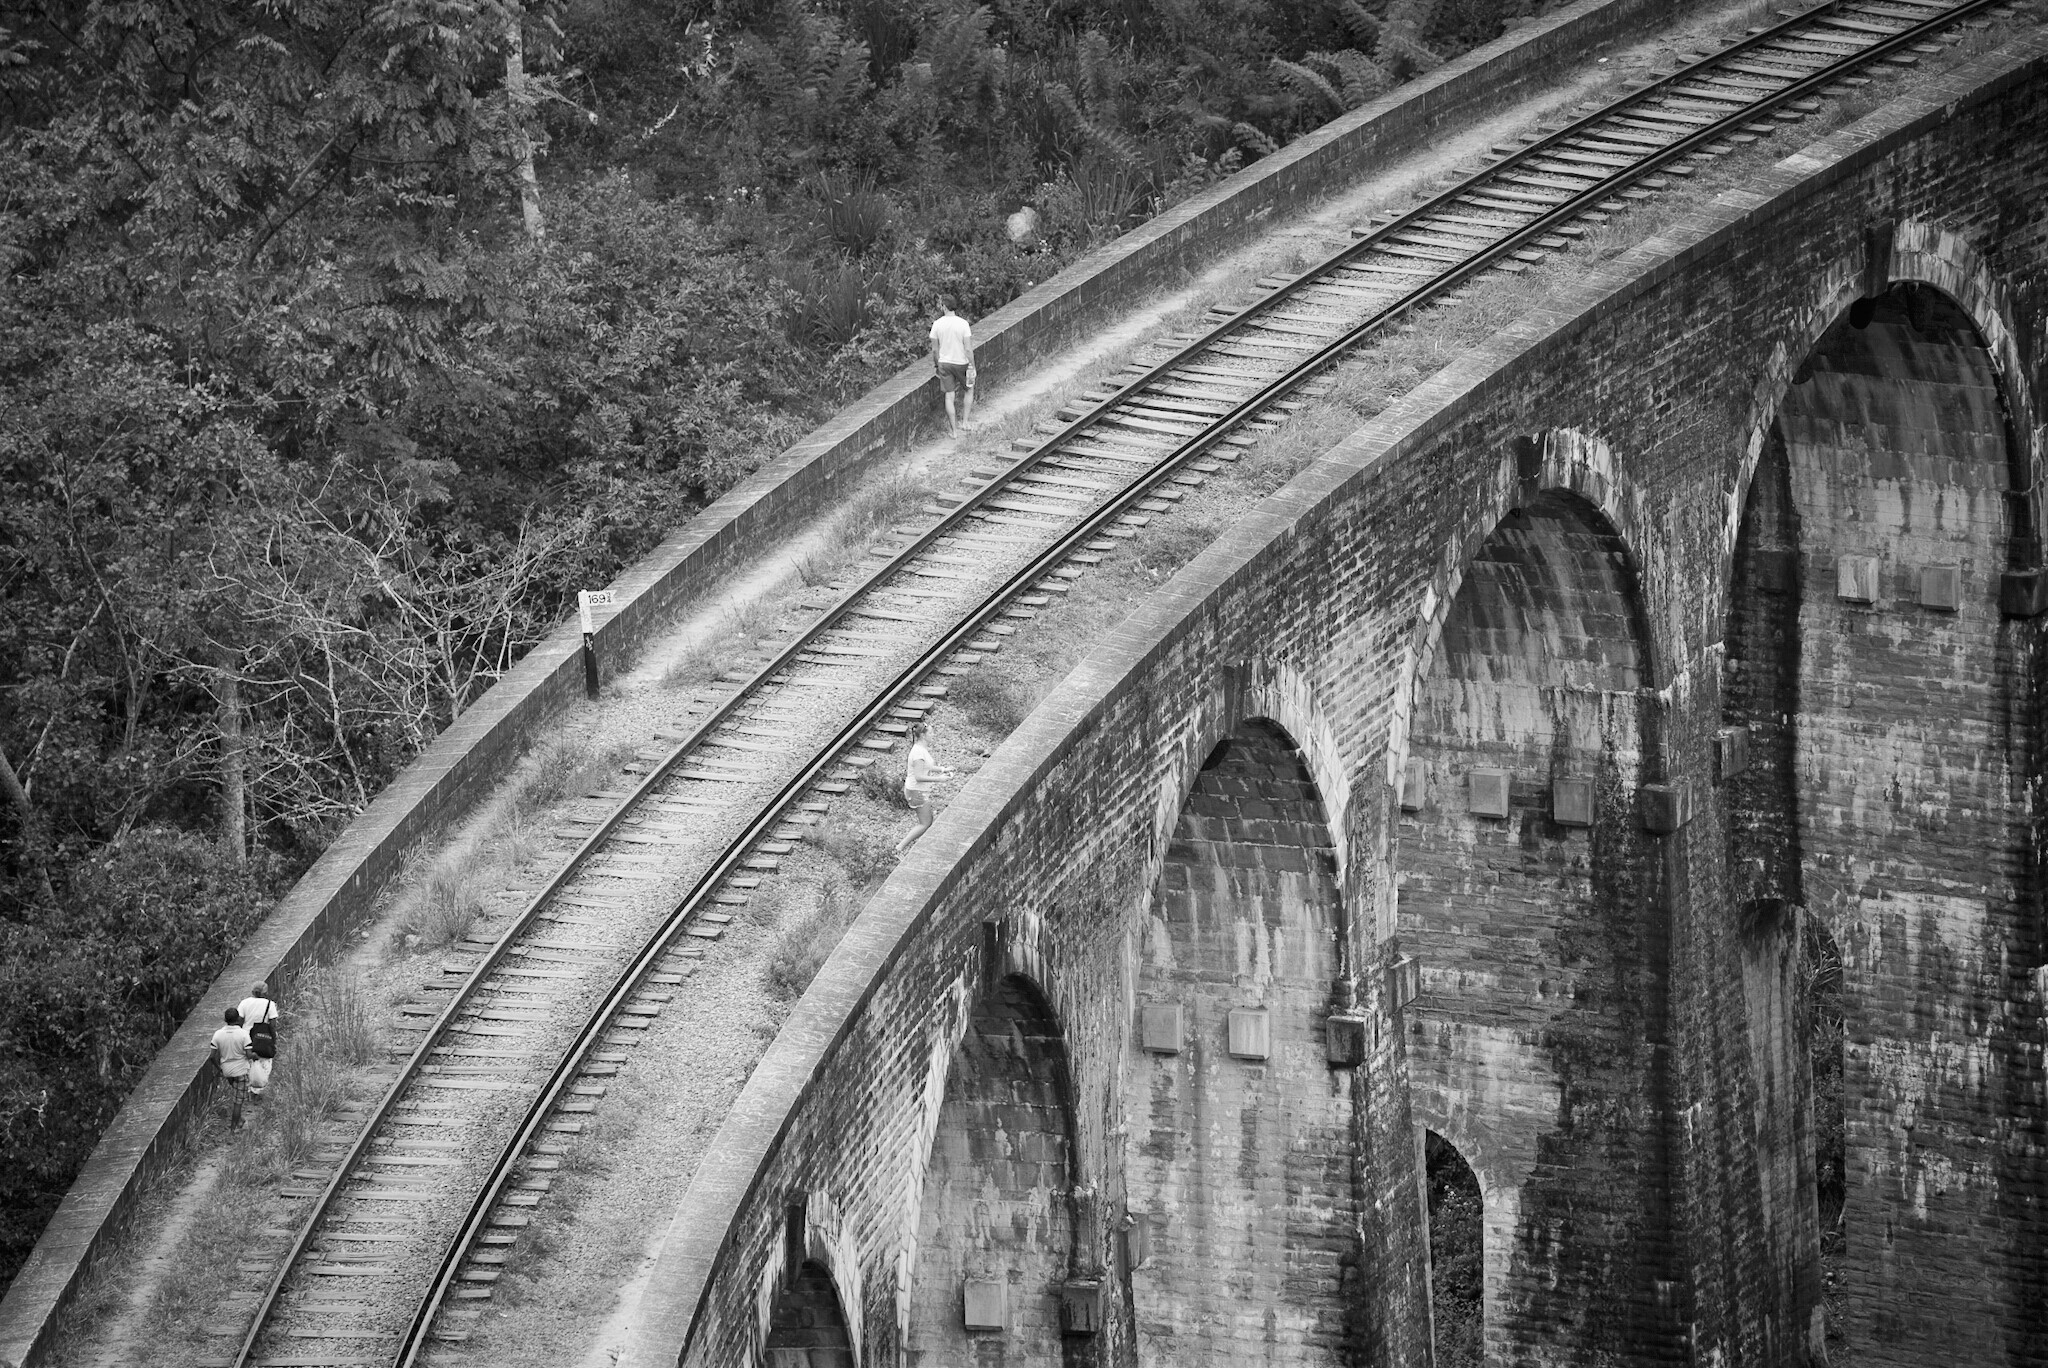 Nine-arch bridge in Ella, Sri Lanka